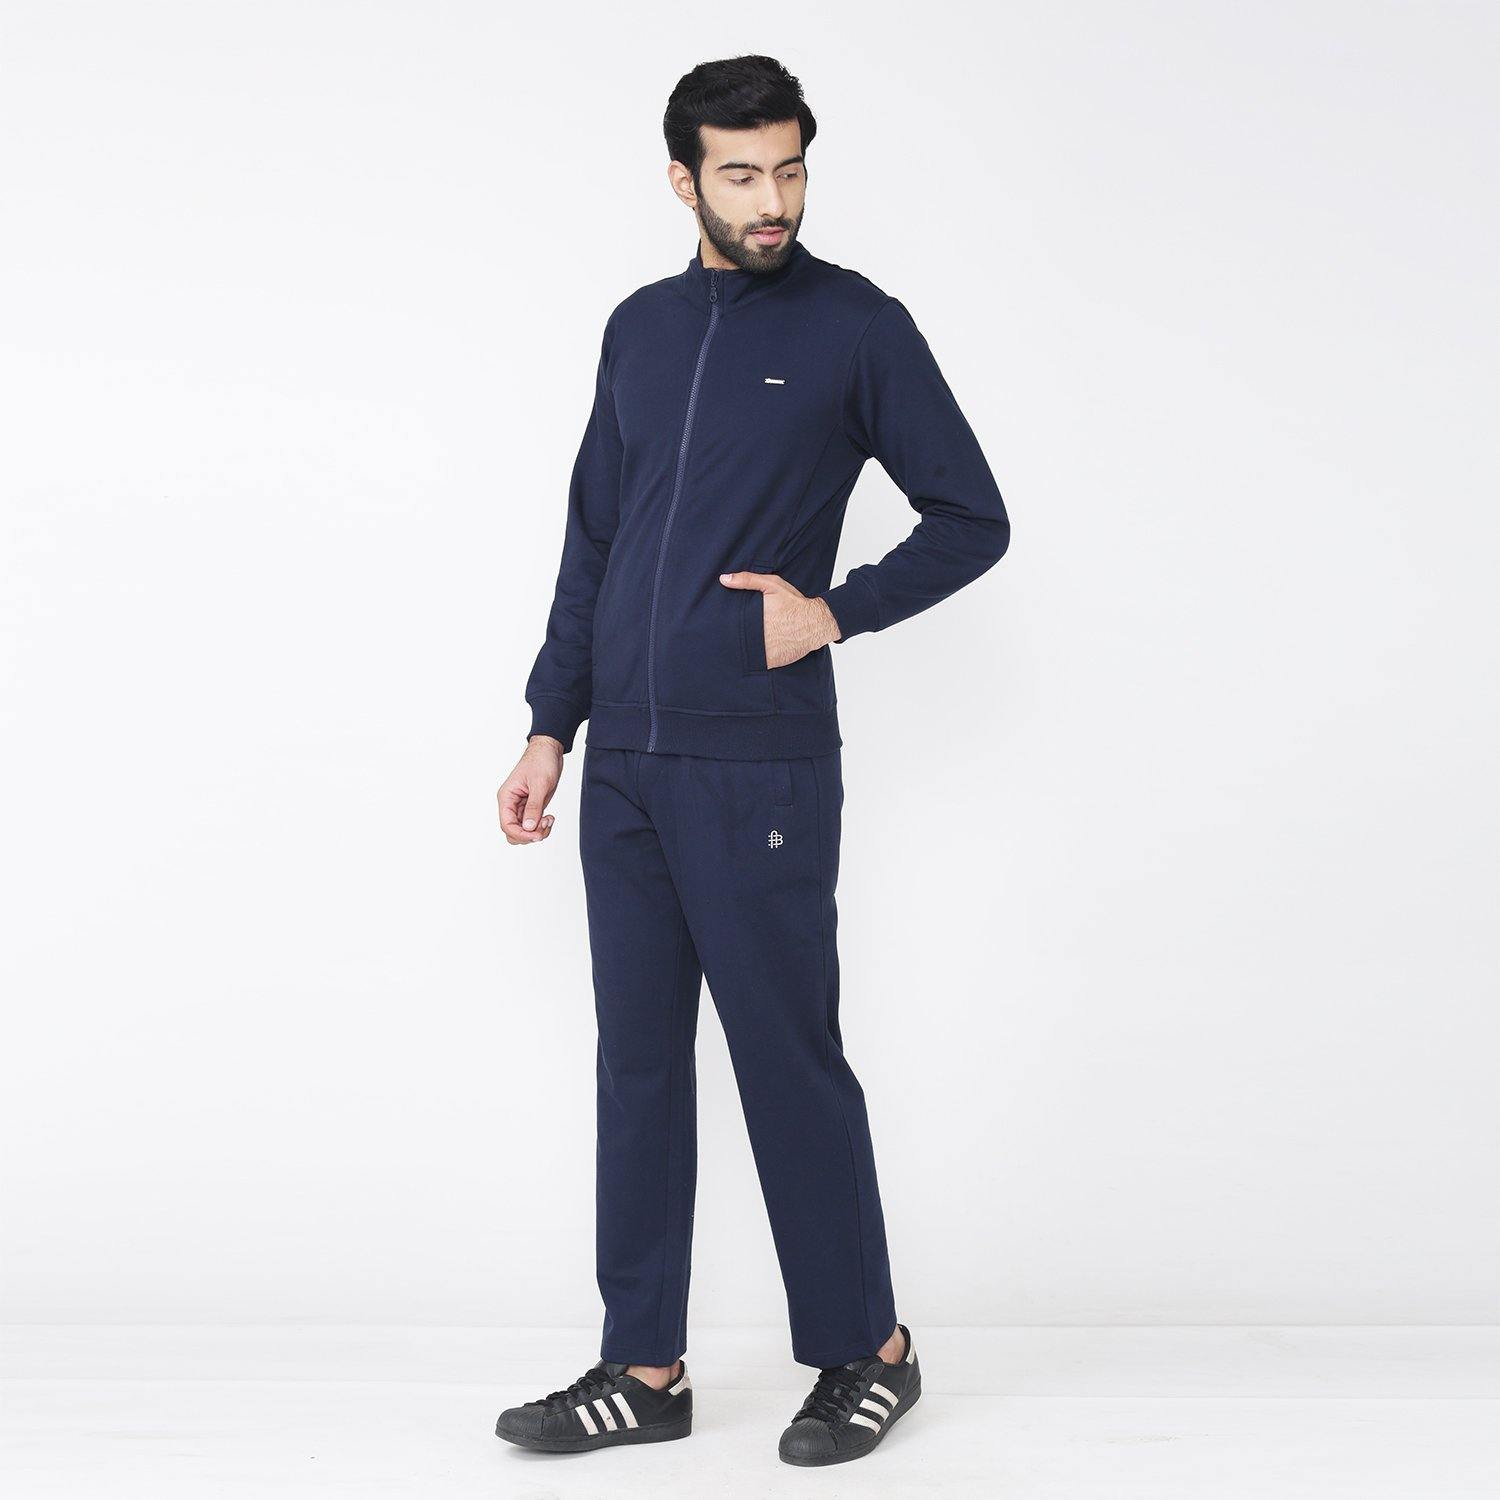 Men's Solid Casual Wear Track Suit - Navy